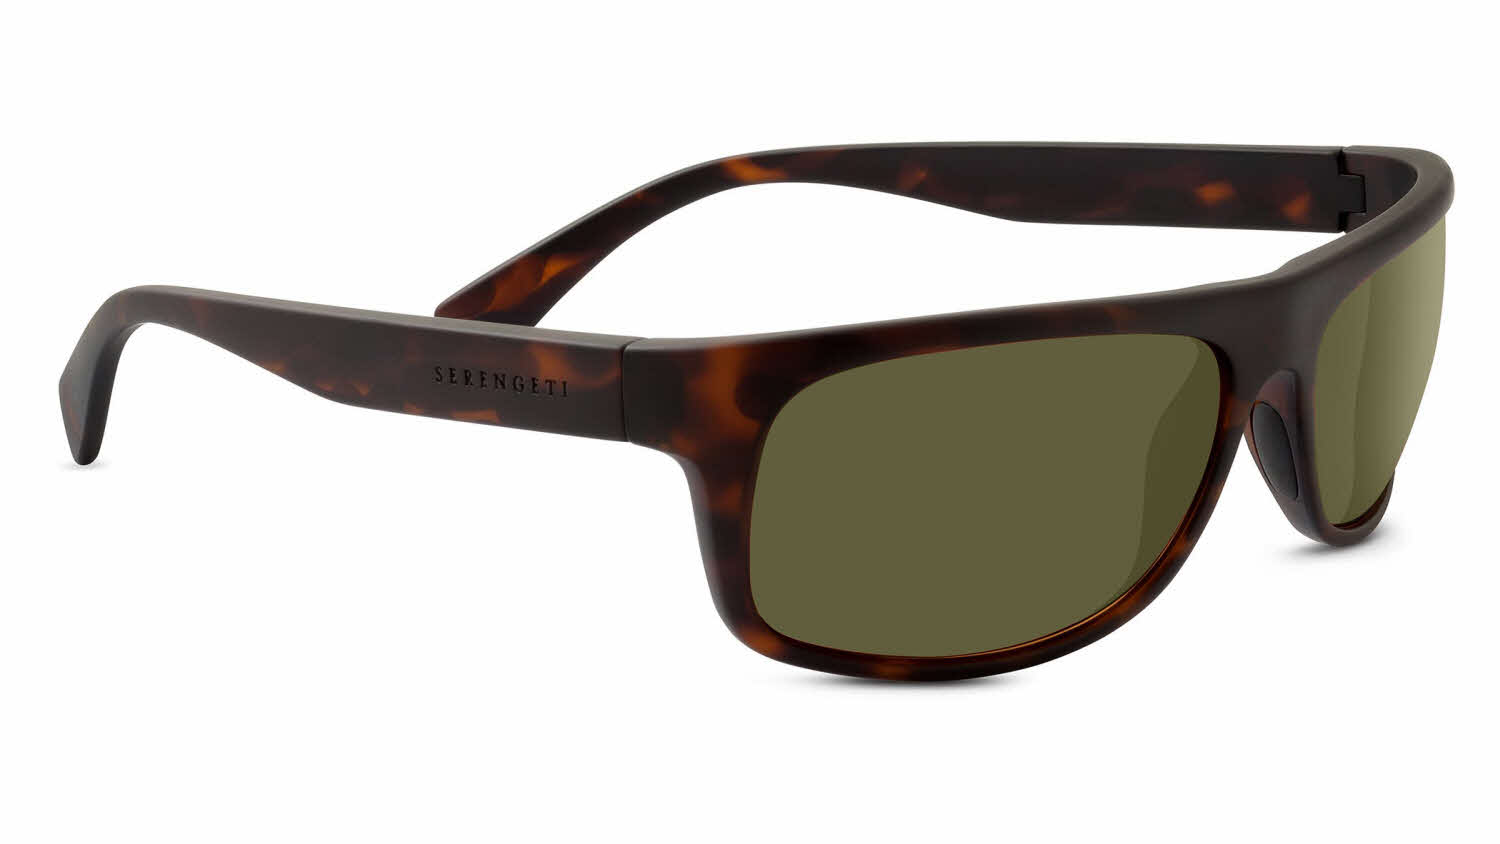 Serengeti Misano Prescription Sunglasses